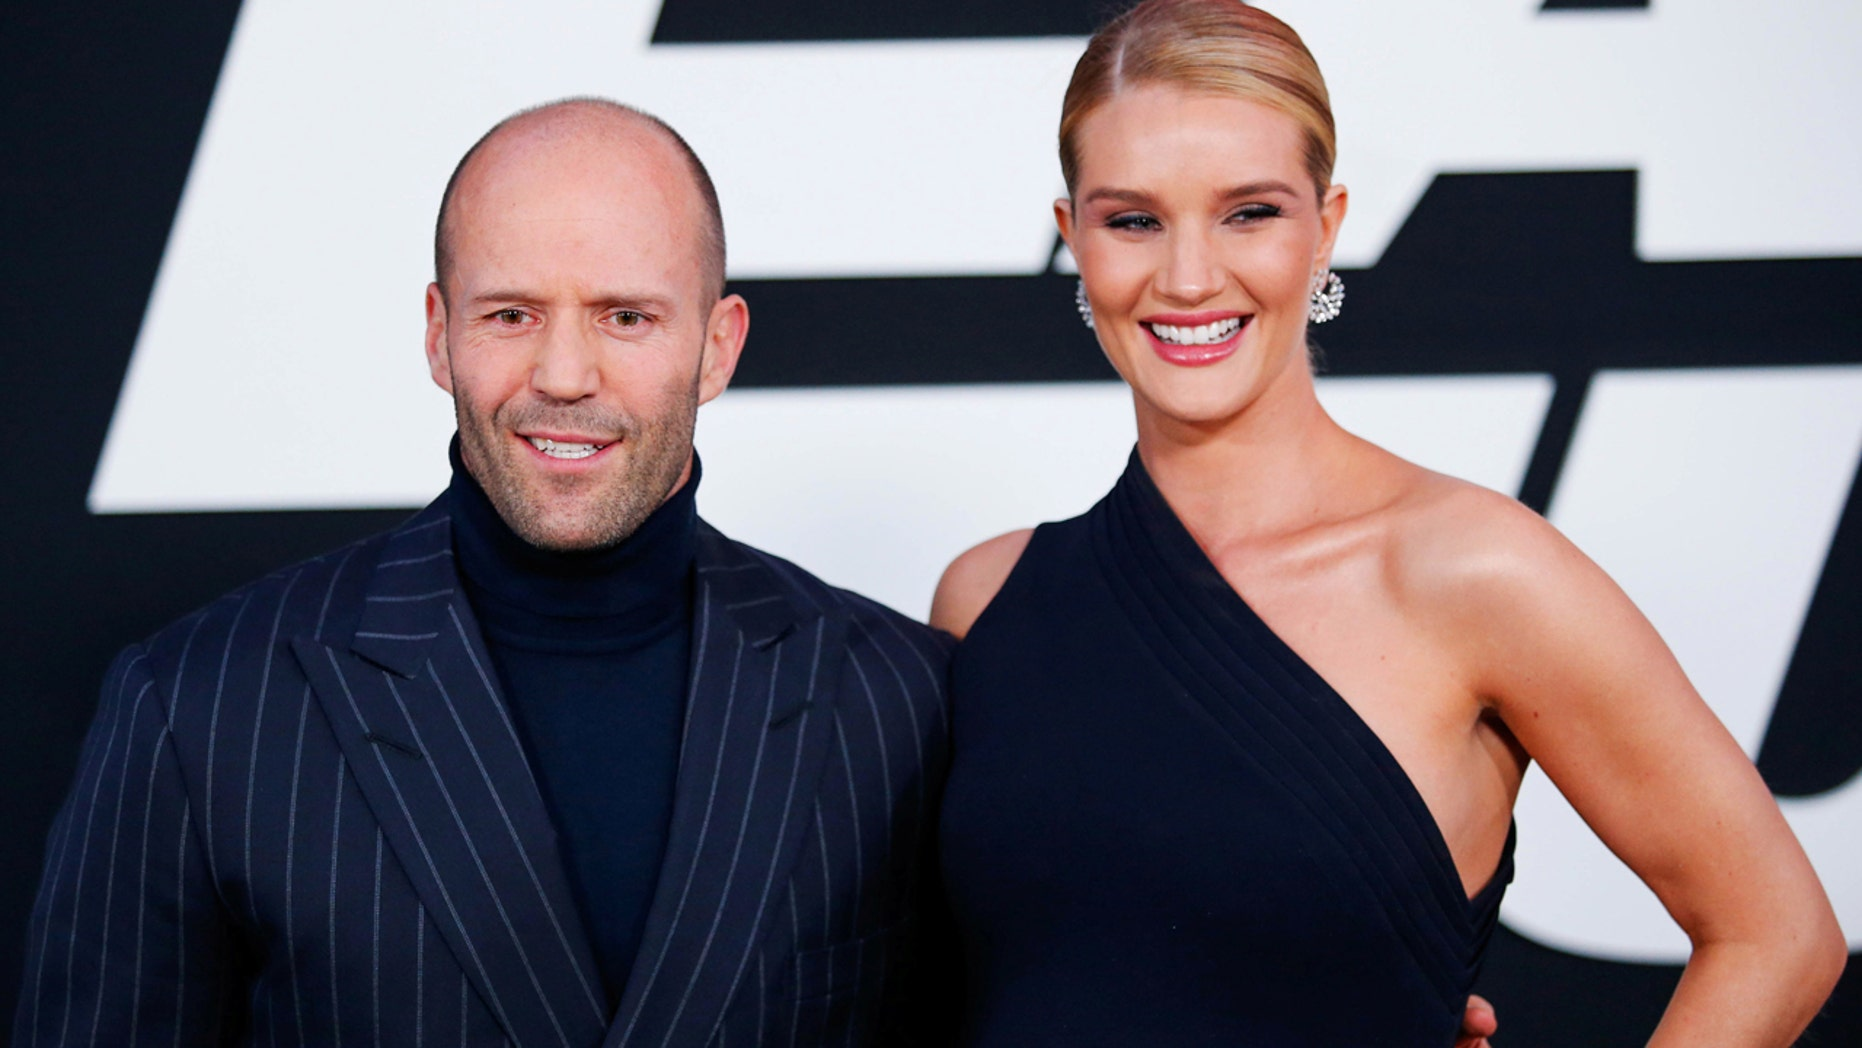 Jason Statham with his long-time partner, supermodel Rosie Huntington-Whiteley.